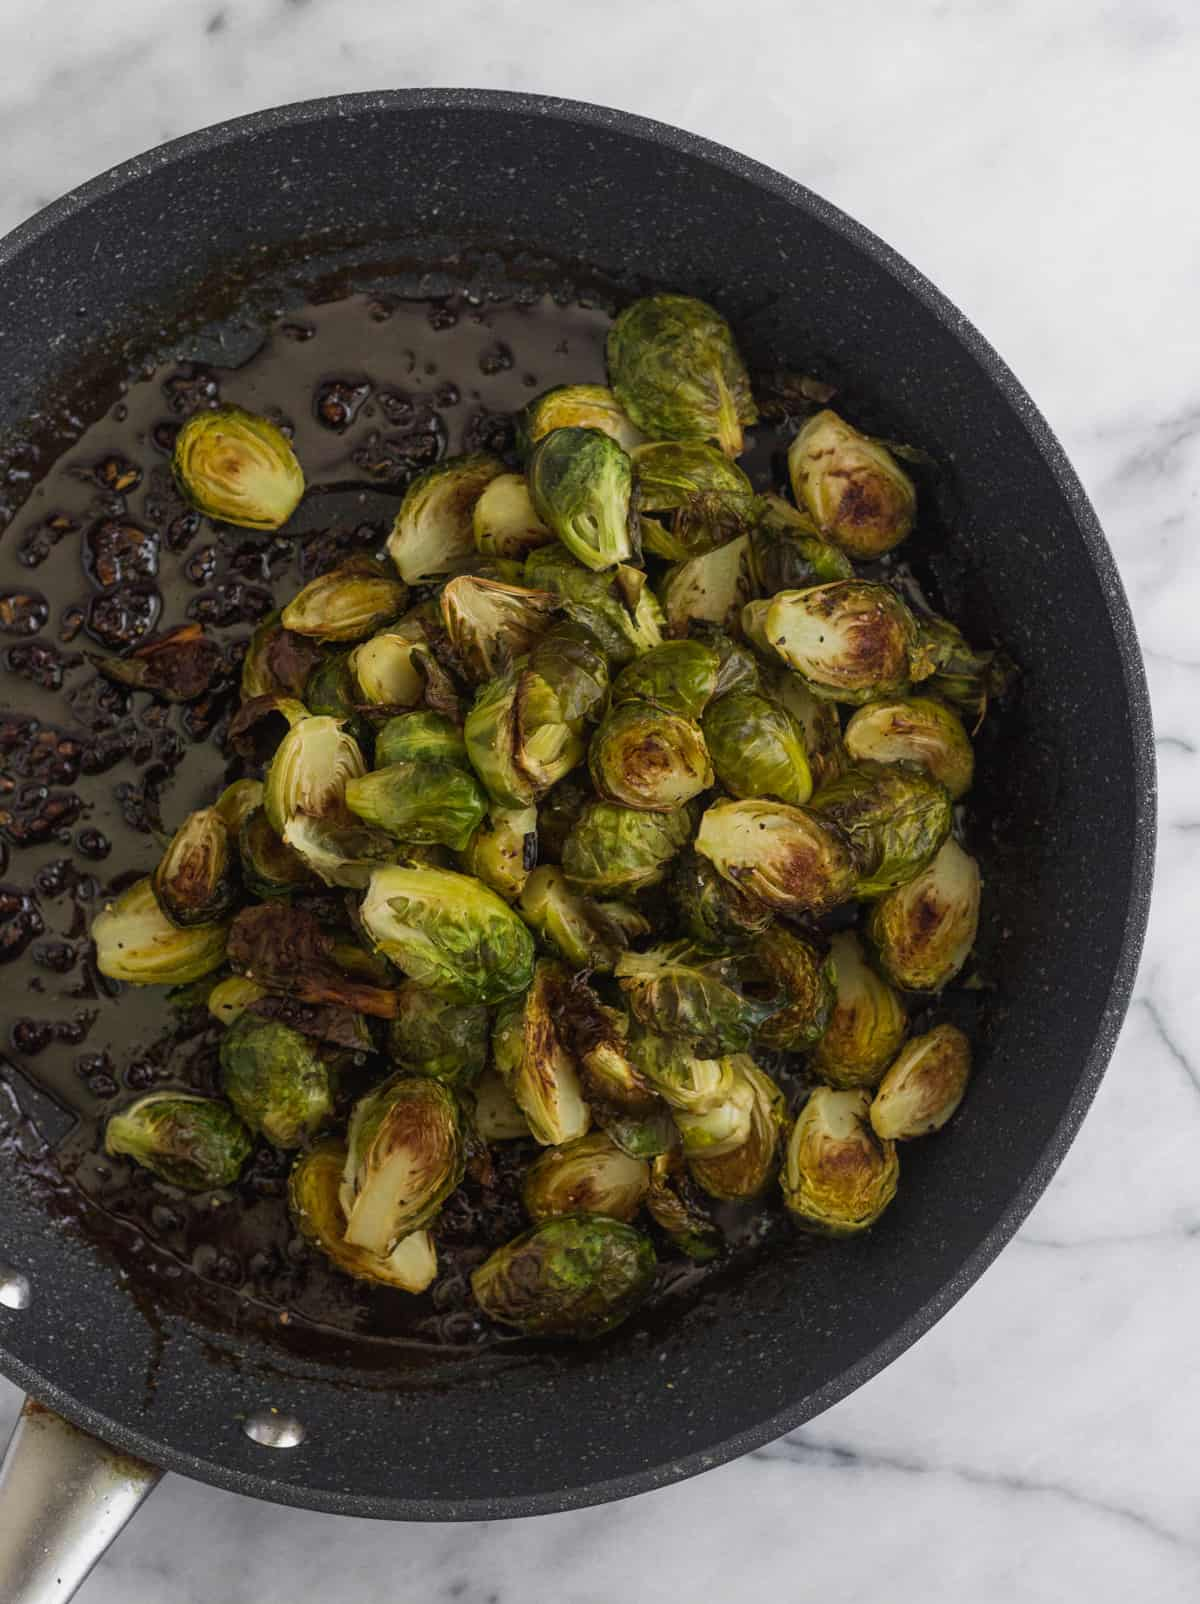 Saute pan filled with miso sauce and roasted brussels sprouts